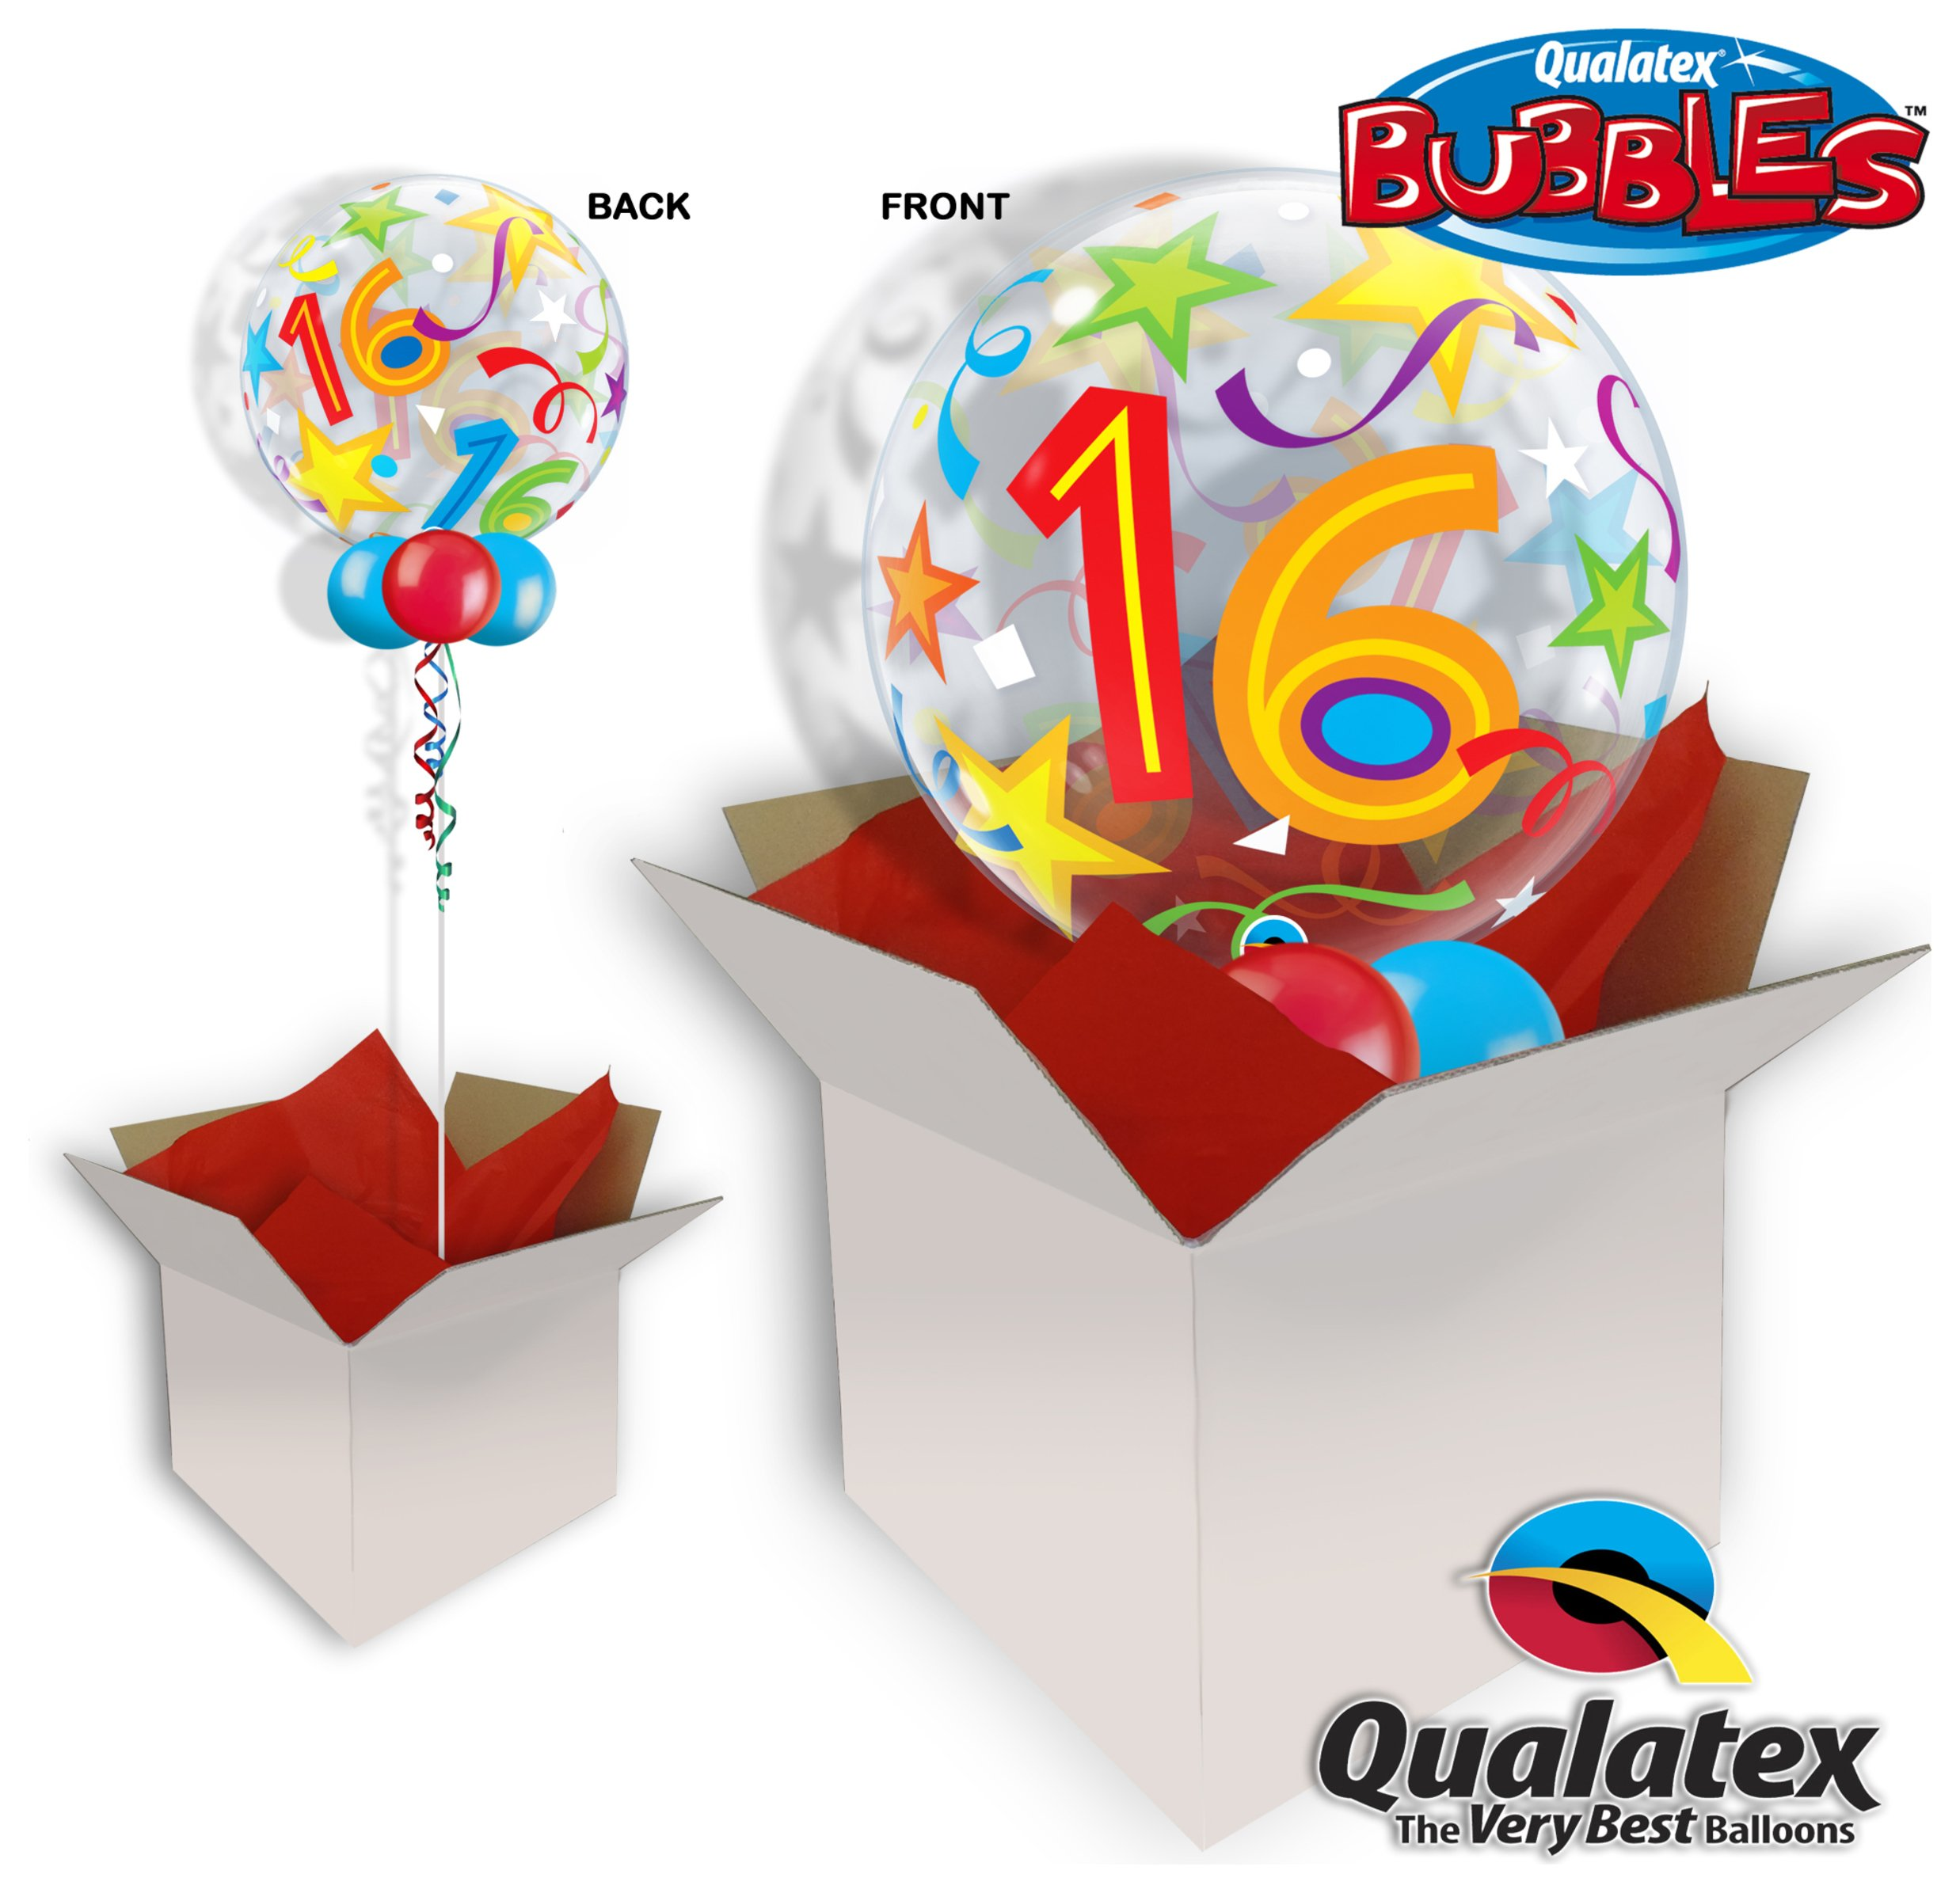 16 Brilliant Stars 22 Inch Bubble Balloon In A Box